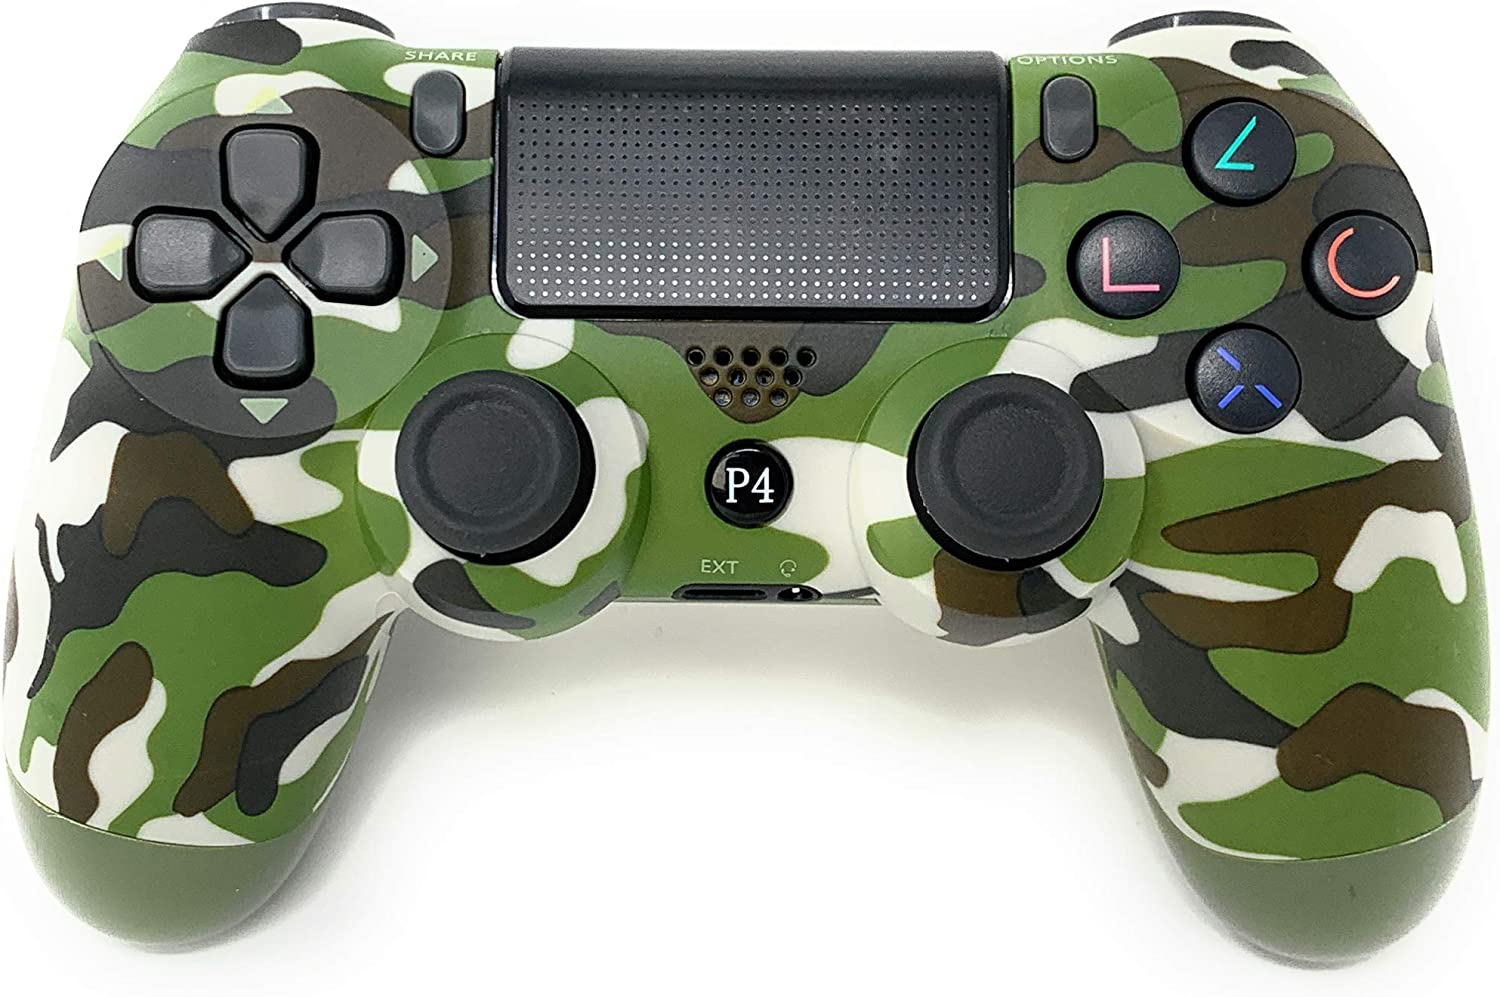 PS4 Controller Green CHASDI C200 Wireless Bluetooth with USB Cable for Playstation 4 Joystick